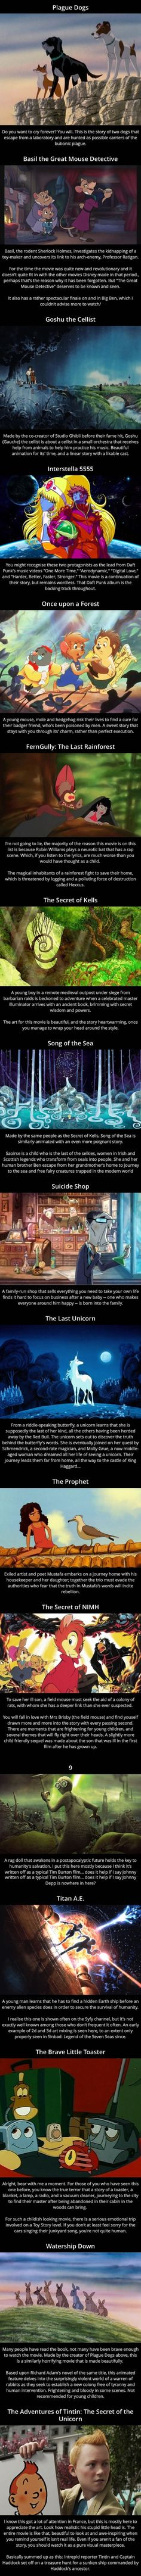 Underappreciated animated movies